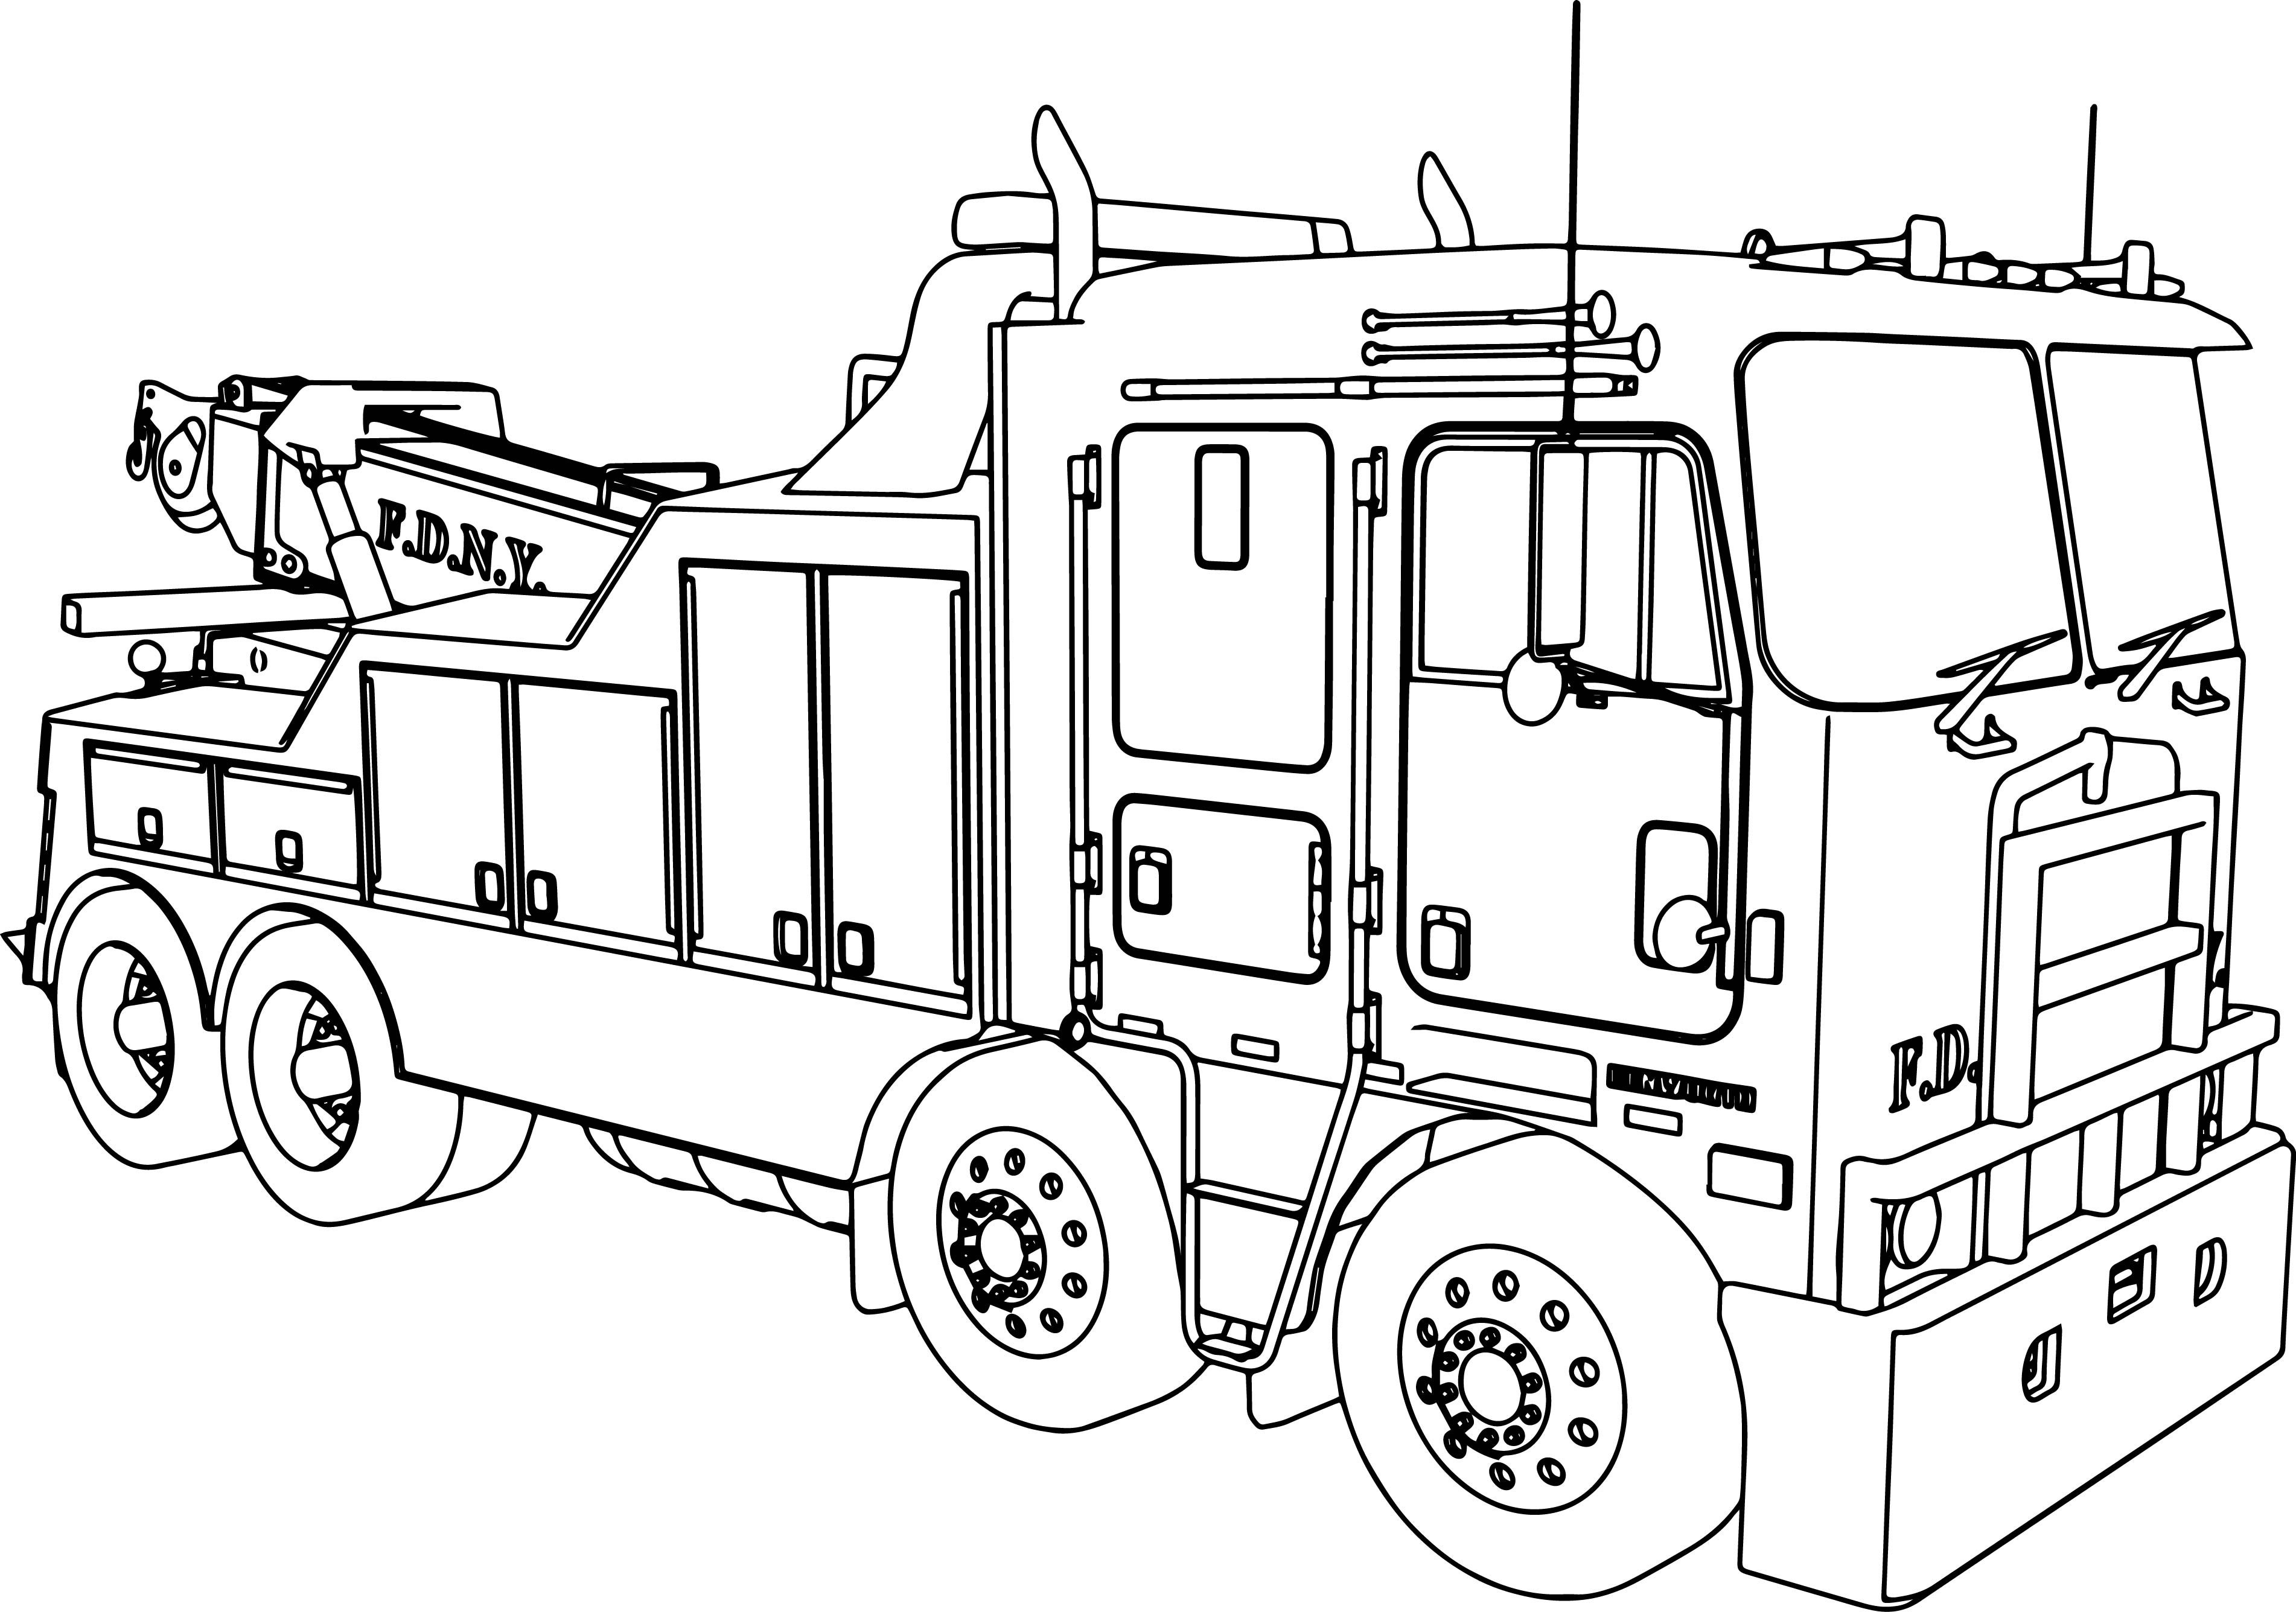 fire truck coloring sheets truck outline drawing at getdrawings free download fire truck coloring sheets